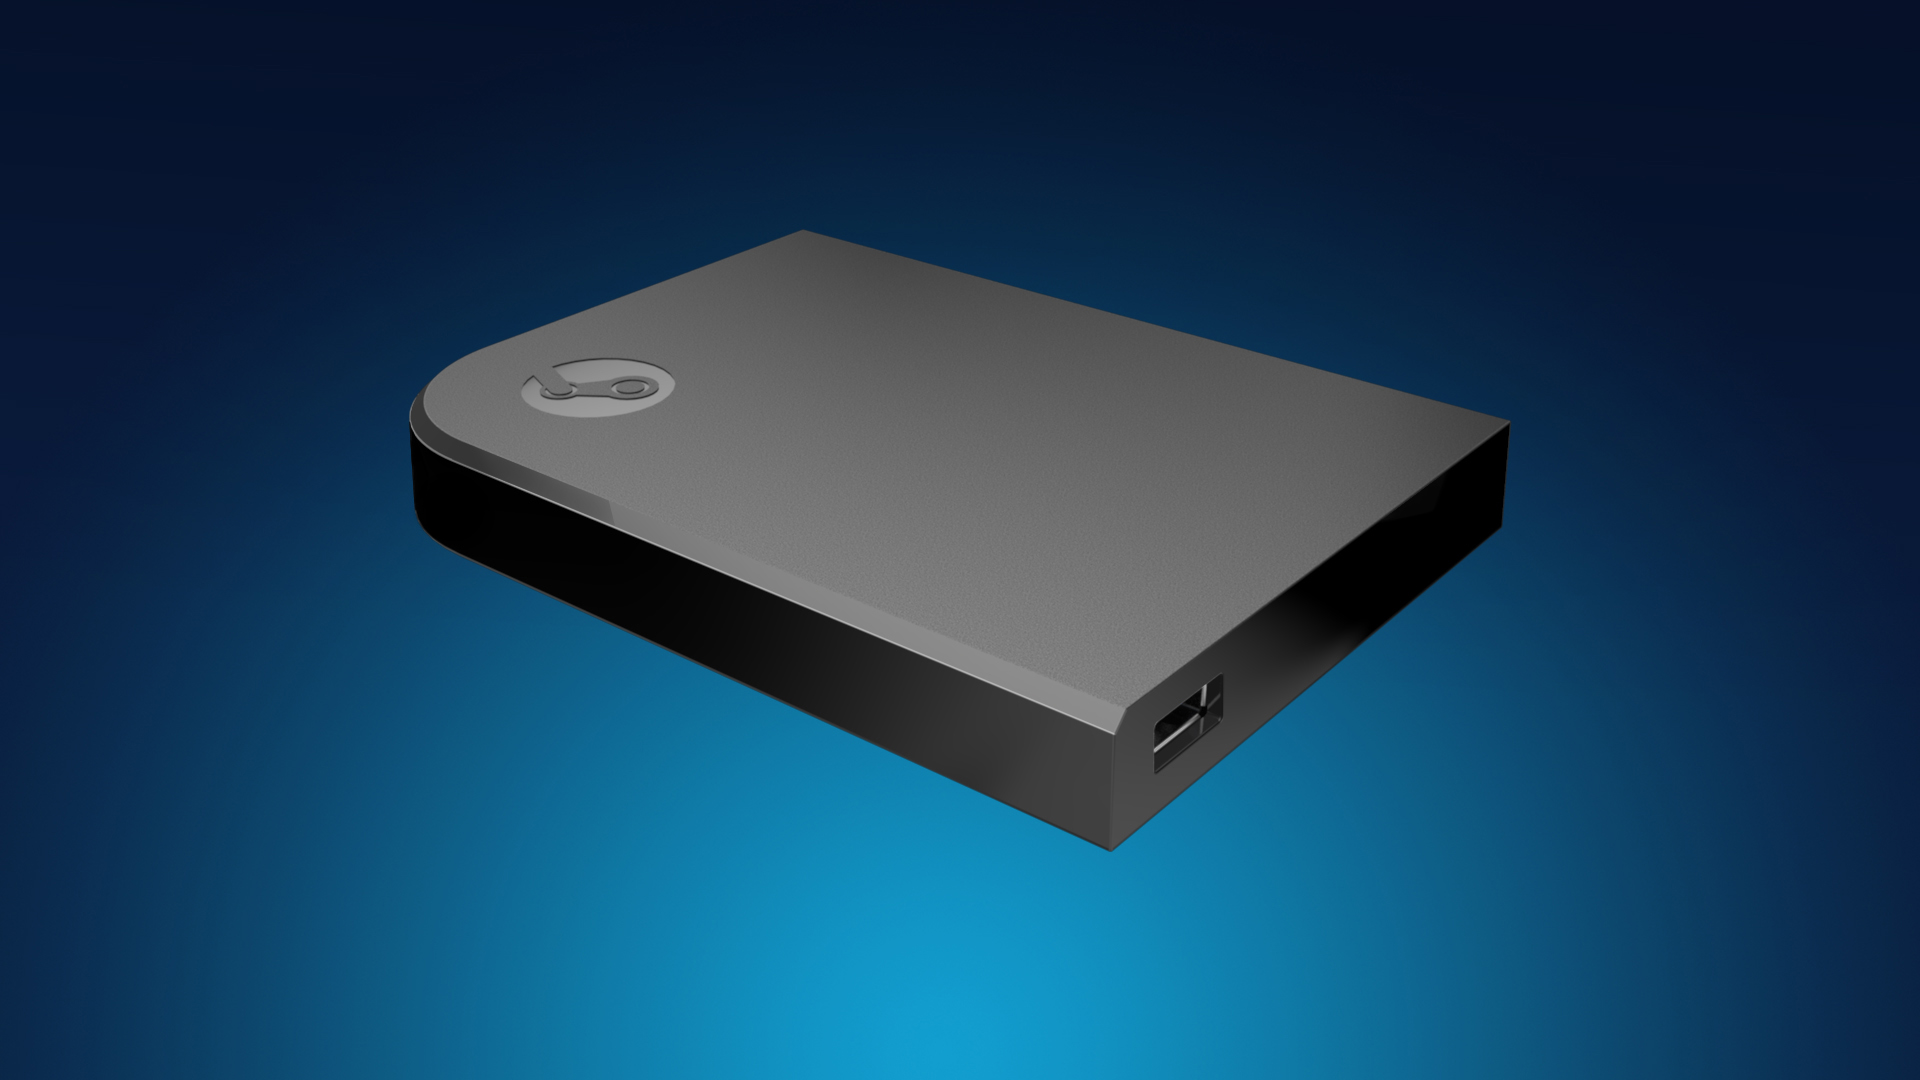 Valve submits an updated version of Steam Link iOS app